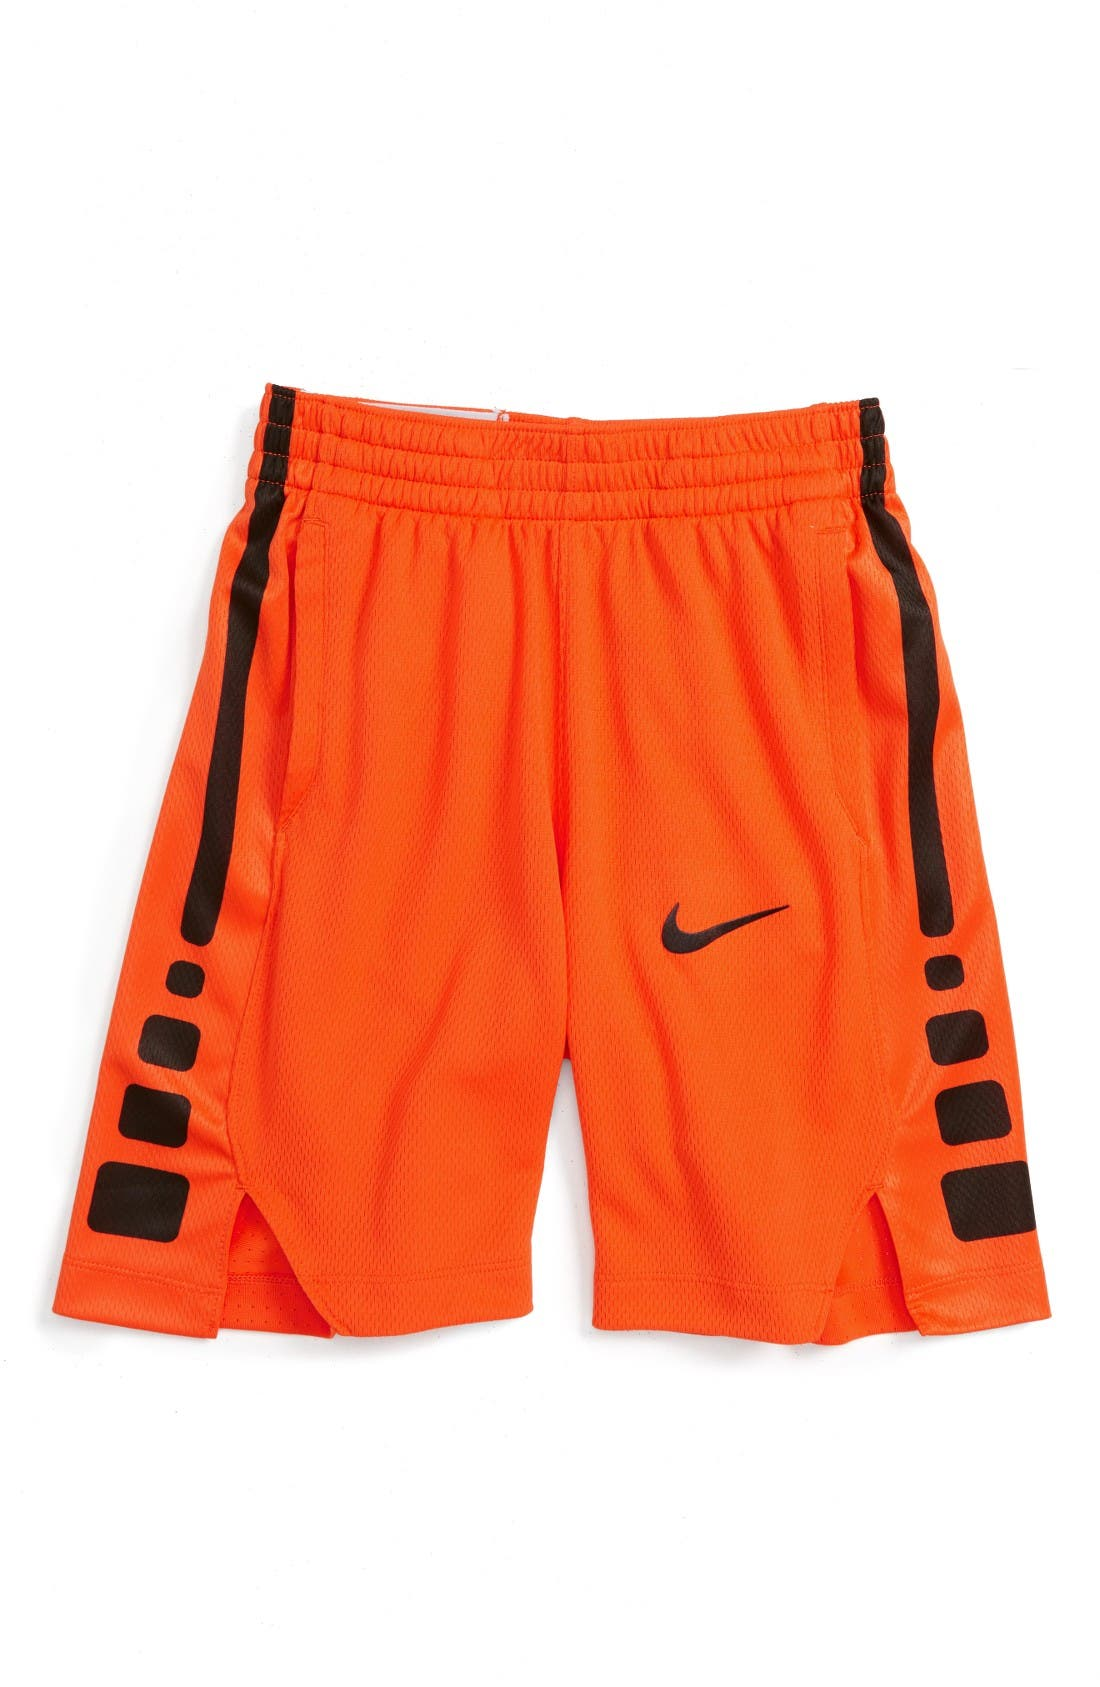 Alternate Image 1 Selected - Nike Dry Elite Basketball Shorts (Little Boys & Big Boys)